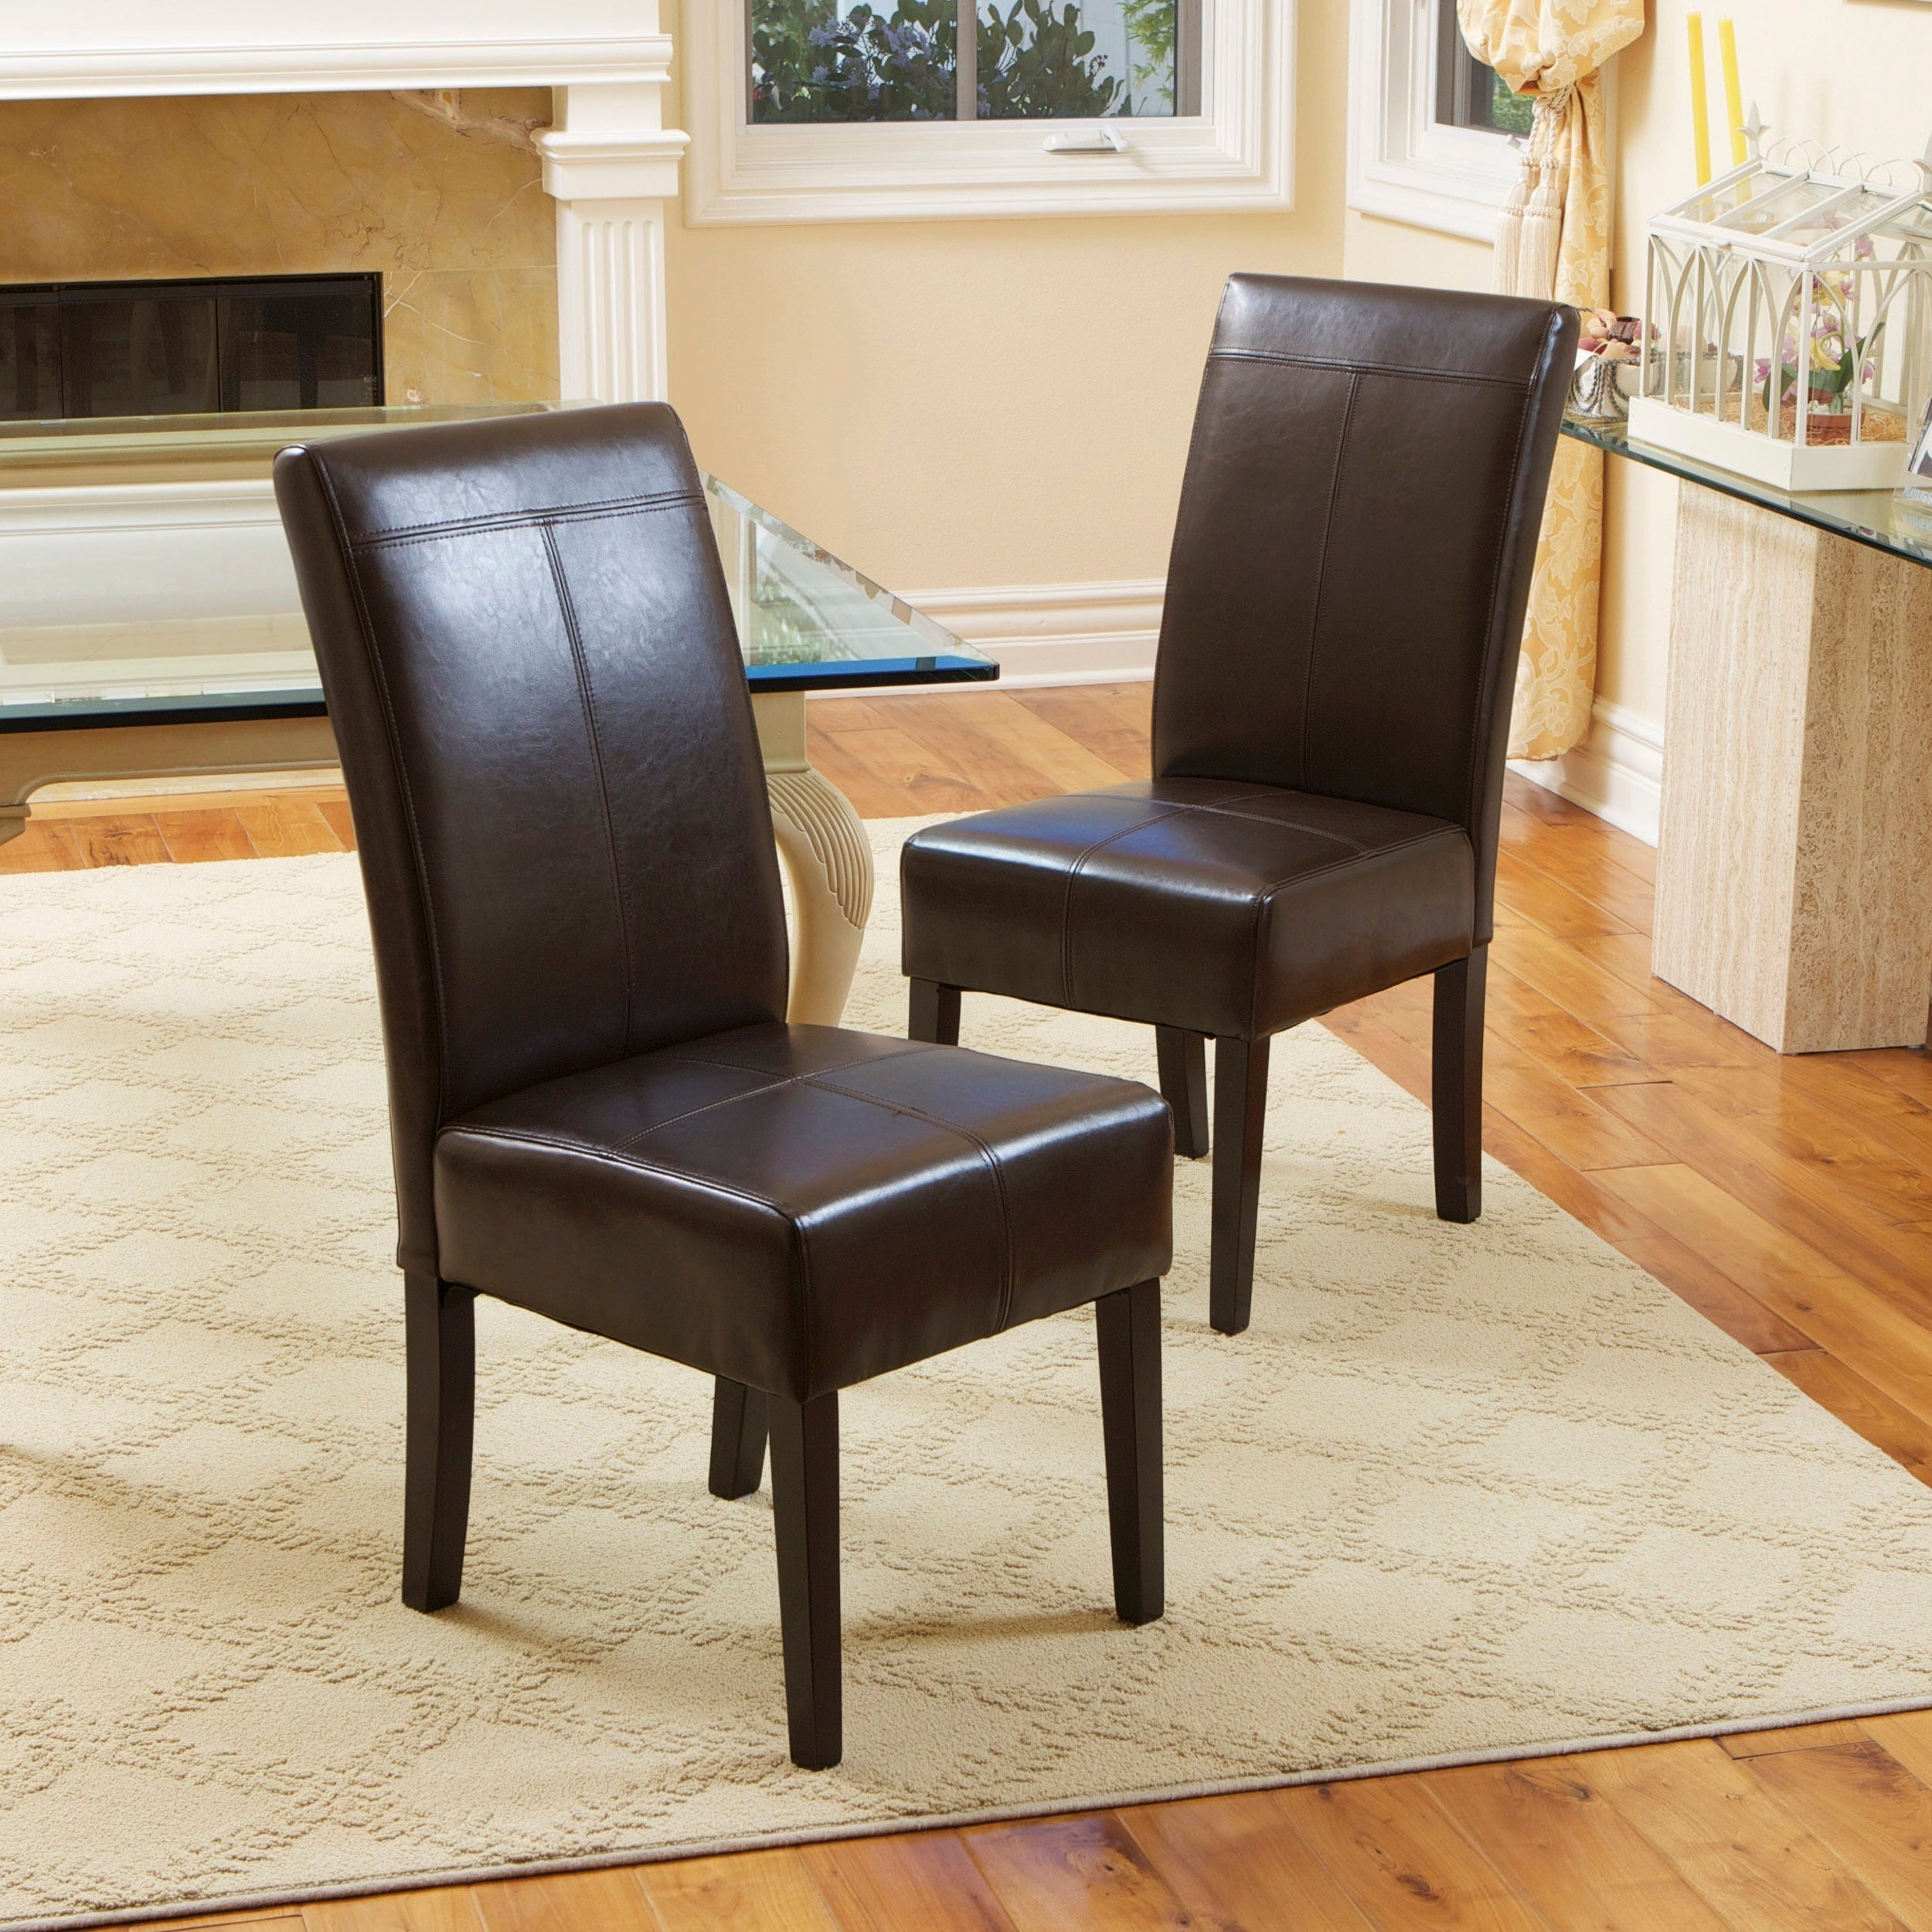 chocolate brown living room chairs sofa designs 2017 shop t stitch leather dining set of 2 by christopher knight home on sale free shipping today overstock com 6185341